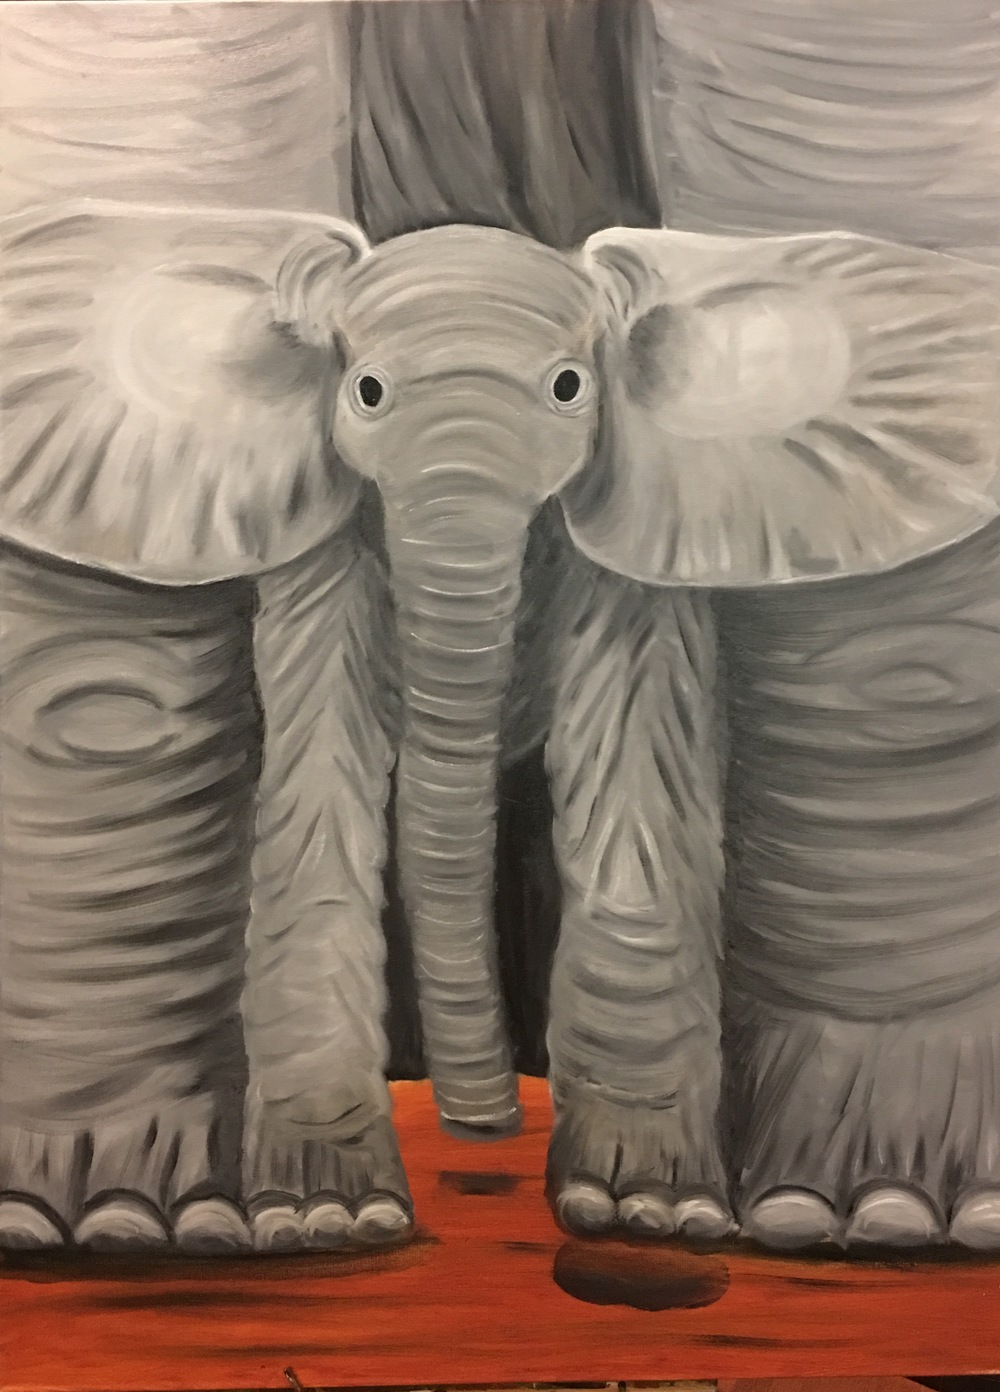 """Mommy & Me: Elephants"" by Teresa McCarthy, 36x36in, oil on canvas (2016), $425 